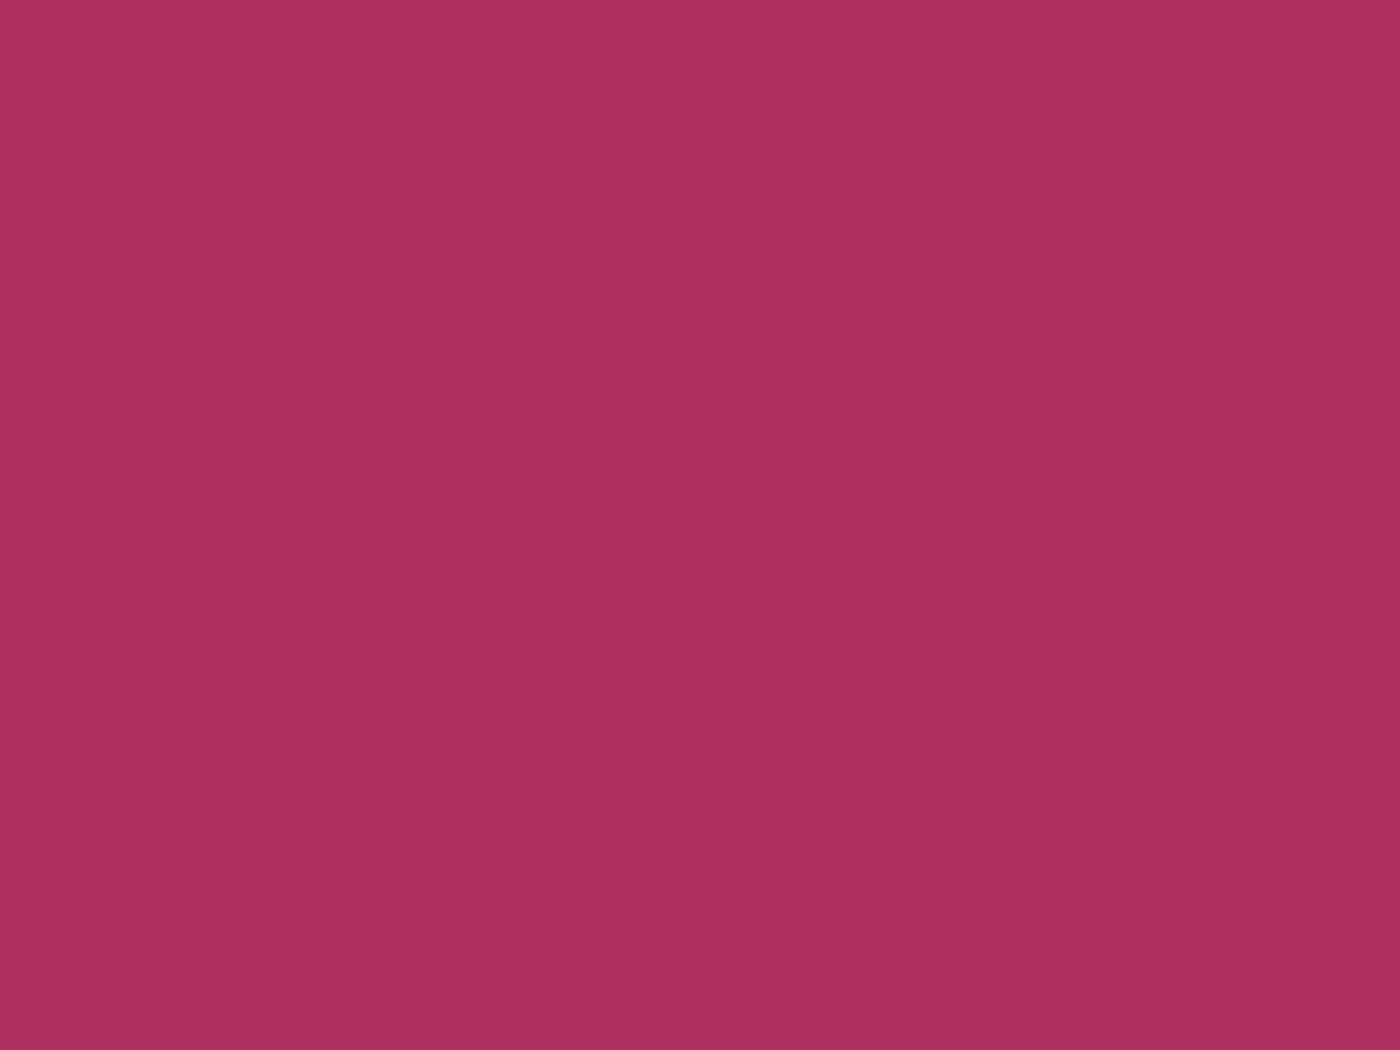 1400x1050 Maroon X11 Gui Solid Color Background